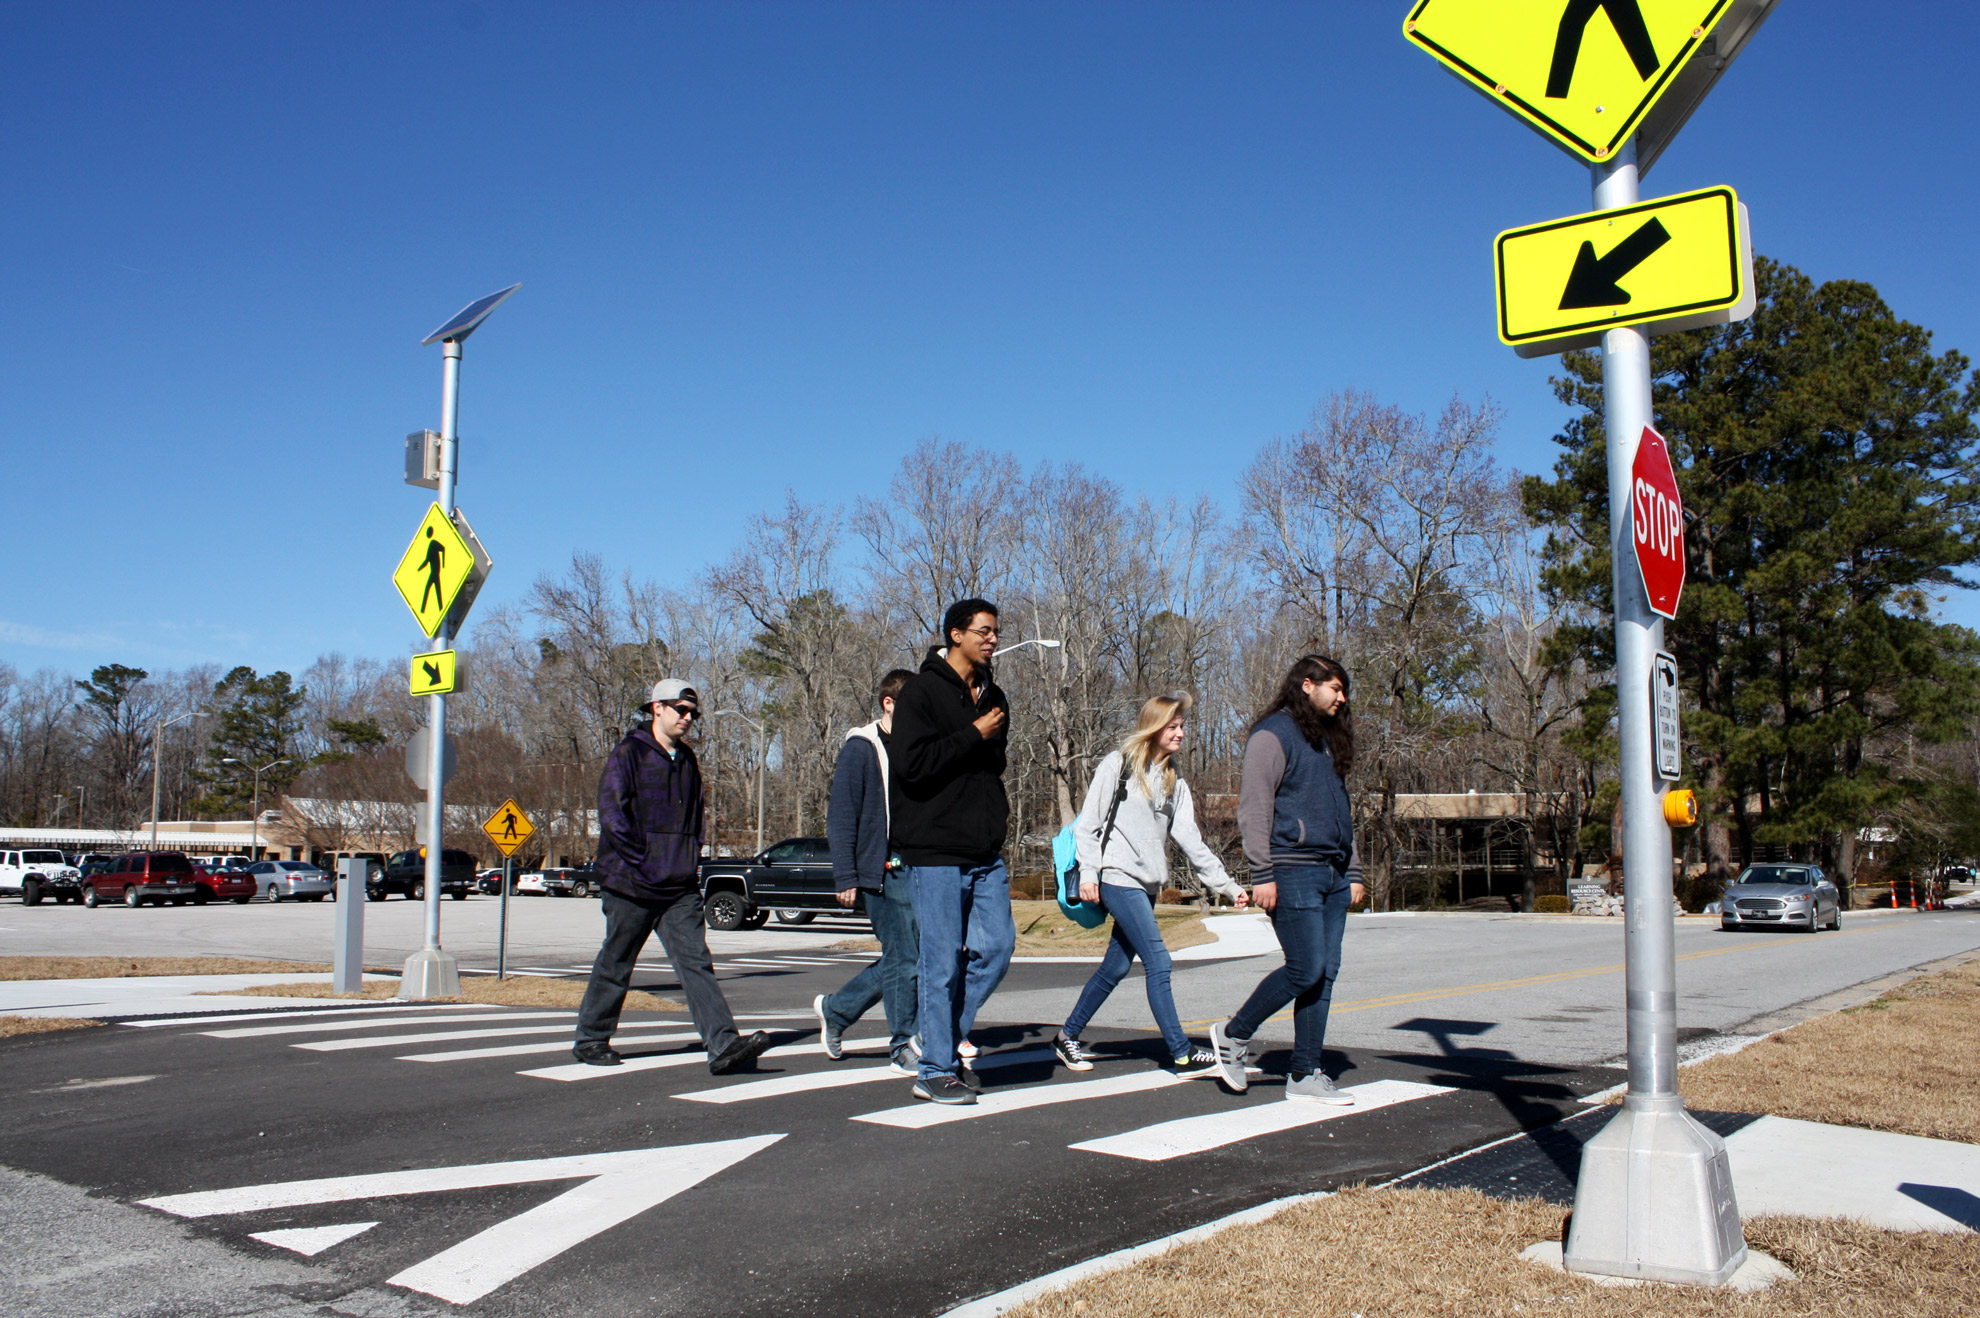 Five students cross at a protected intersection.